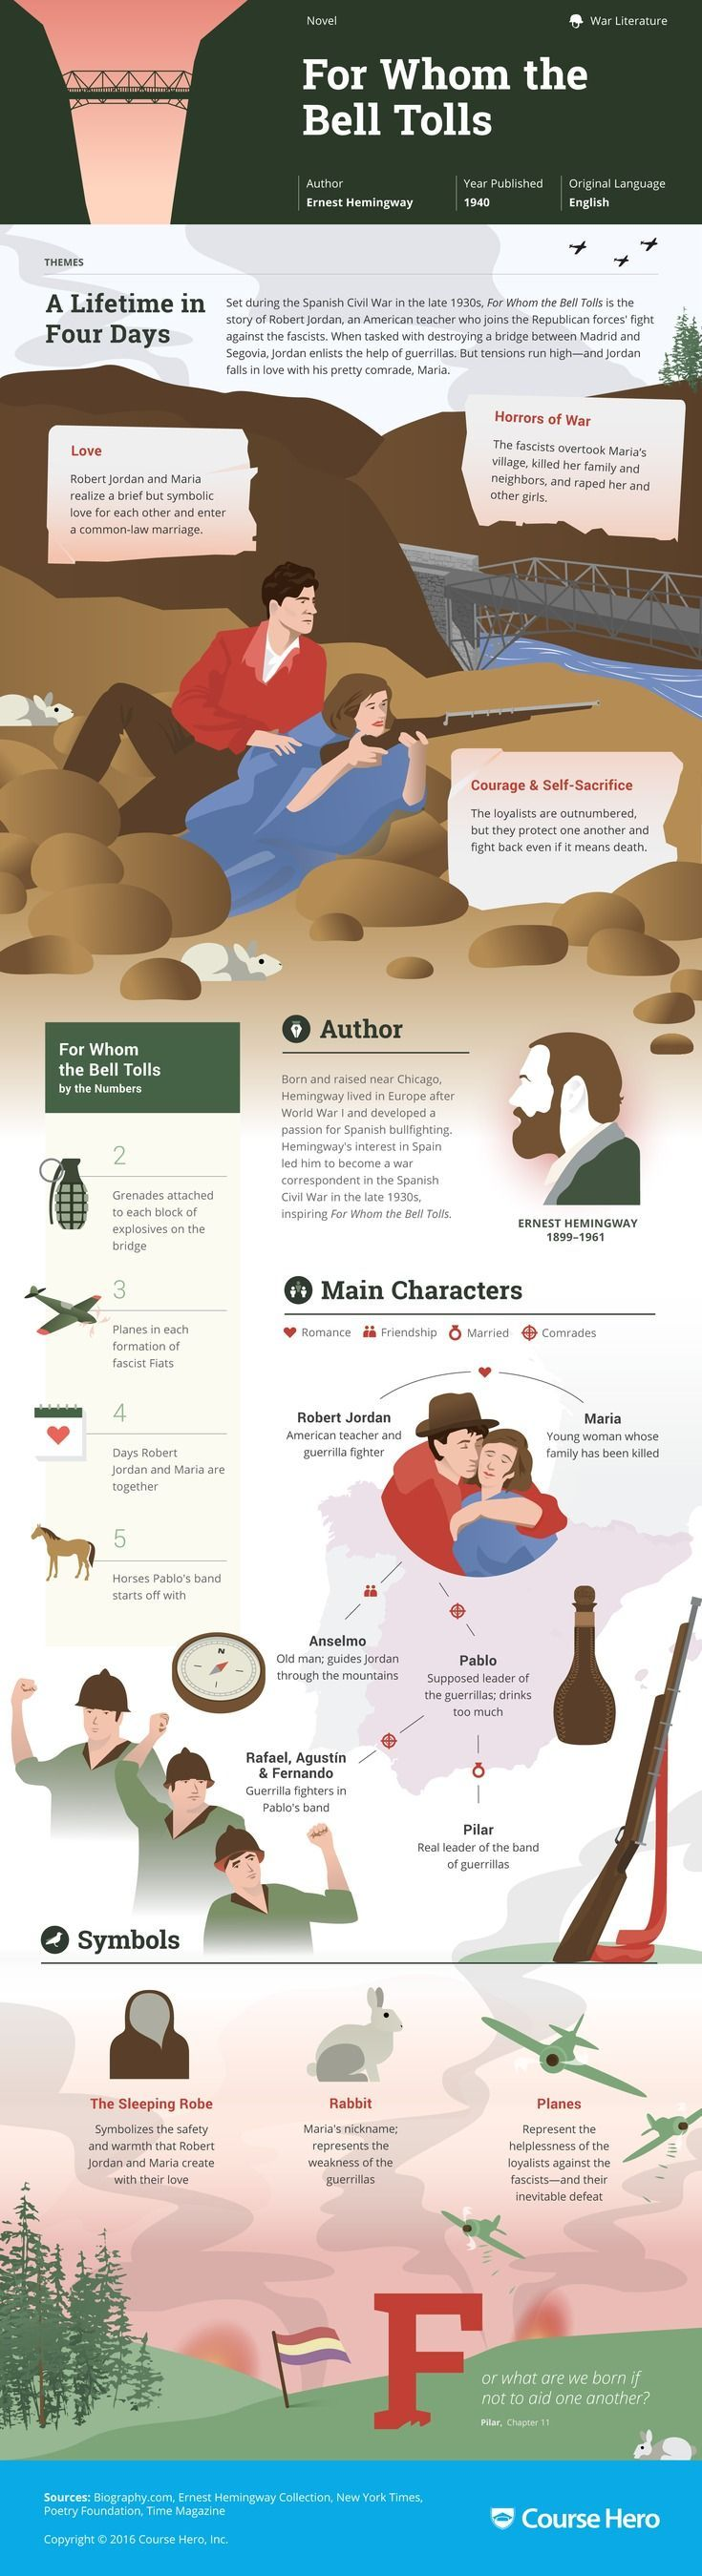 For Whom the Bell Tolls Infographic | Course Hero